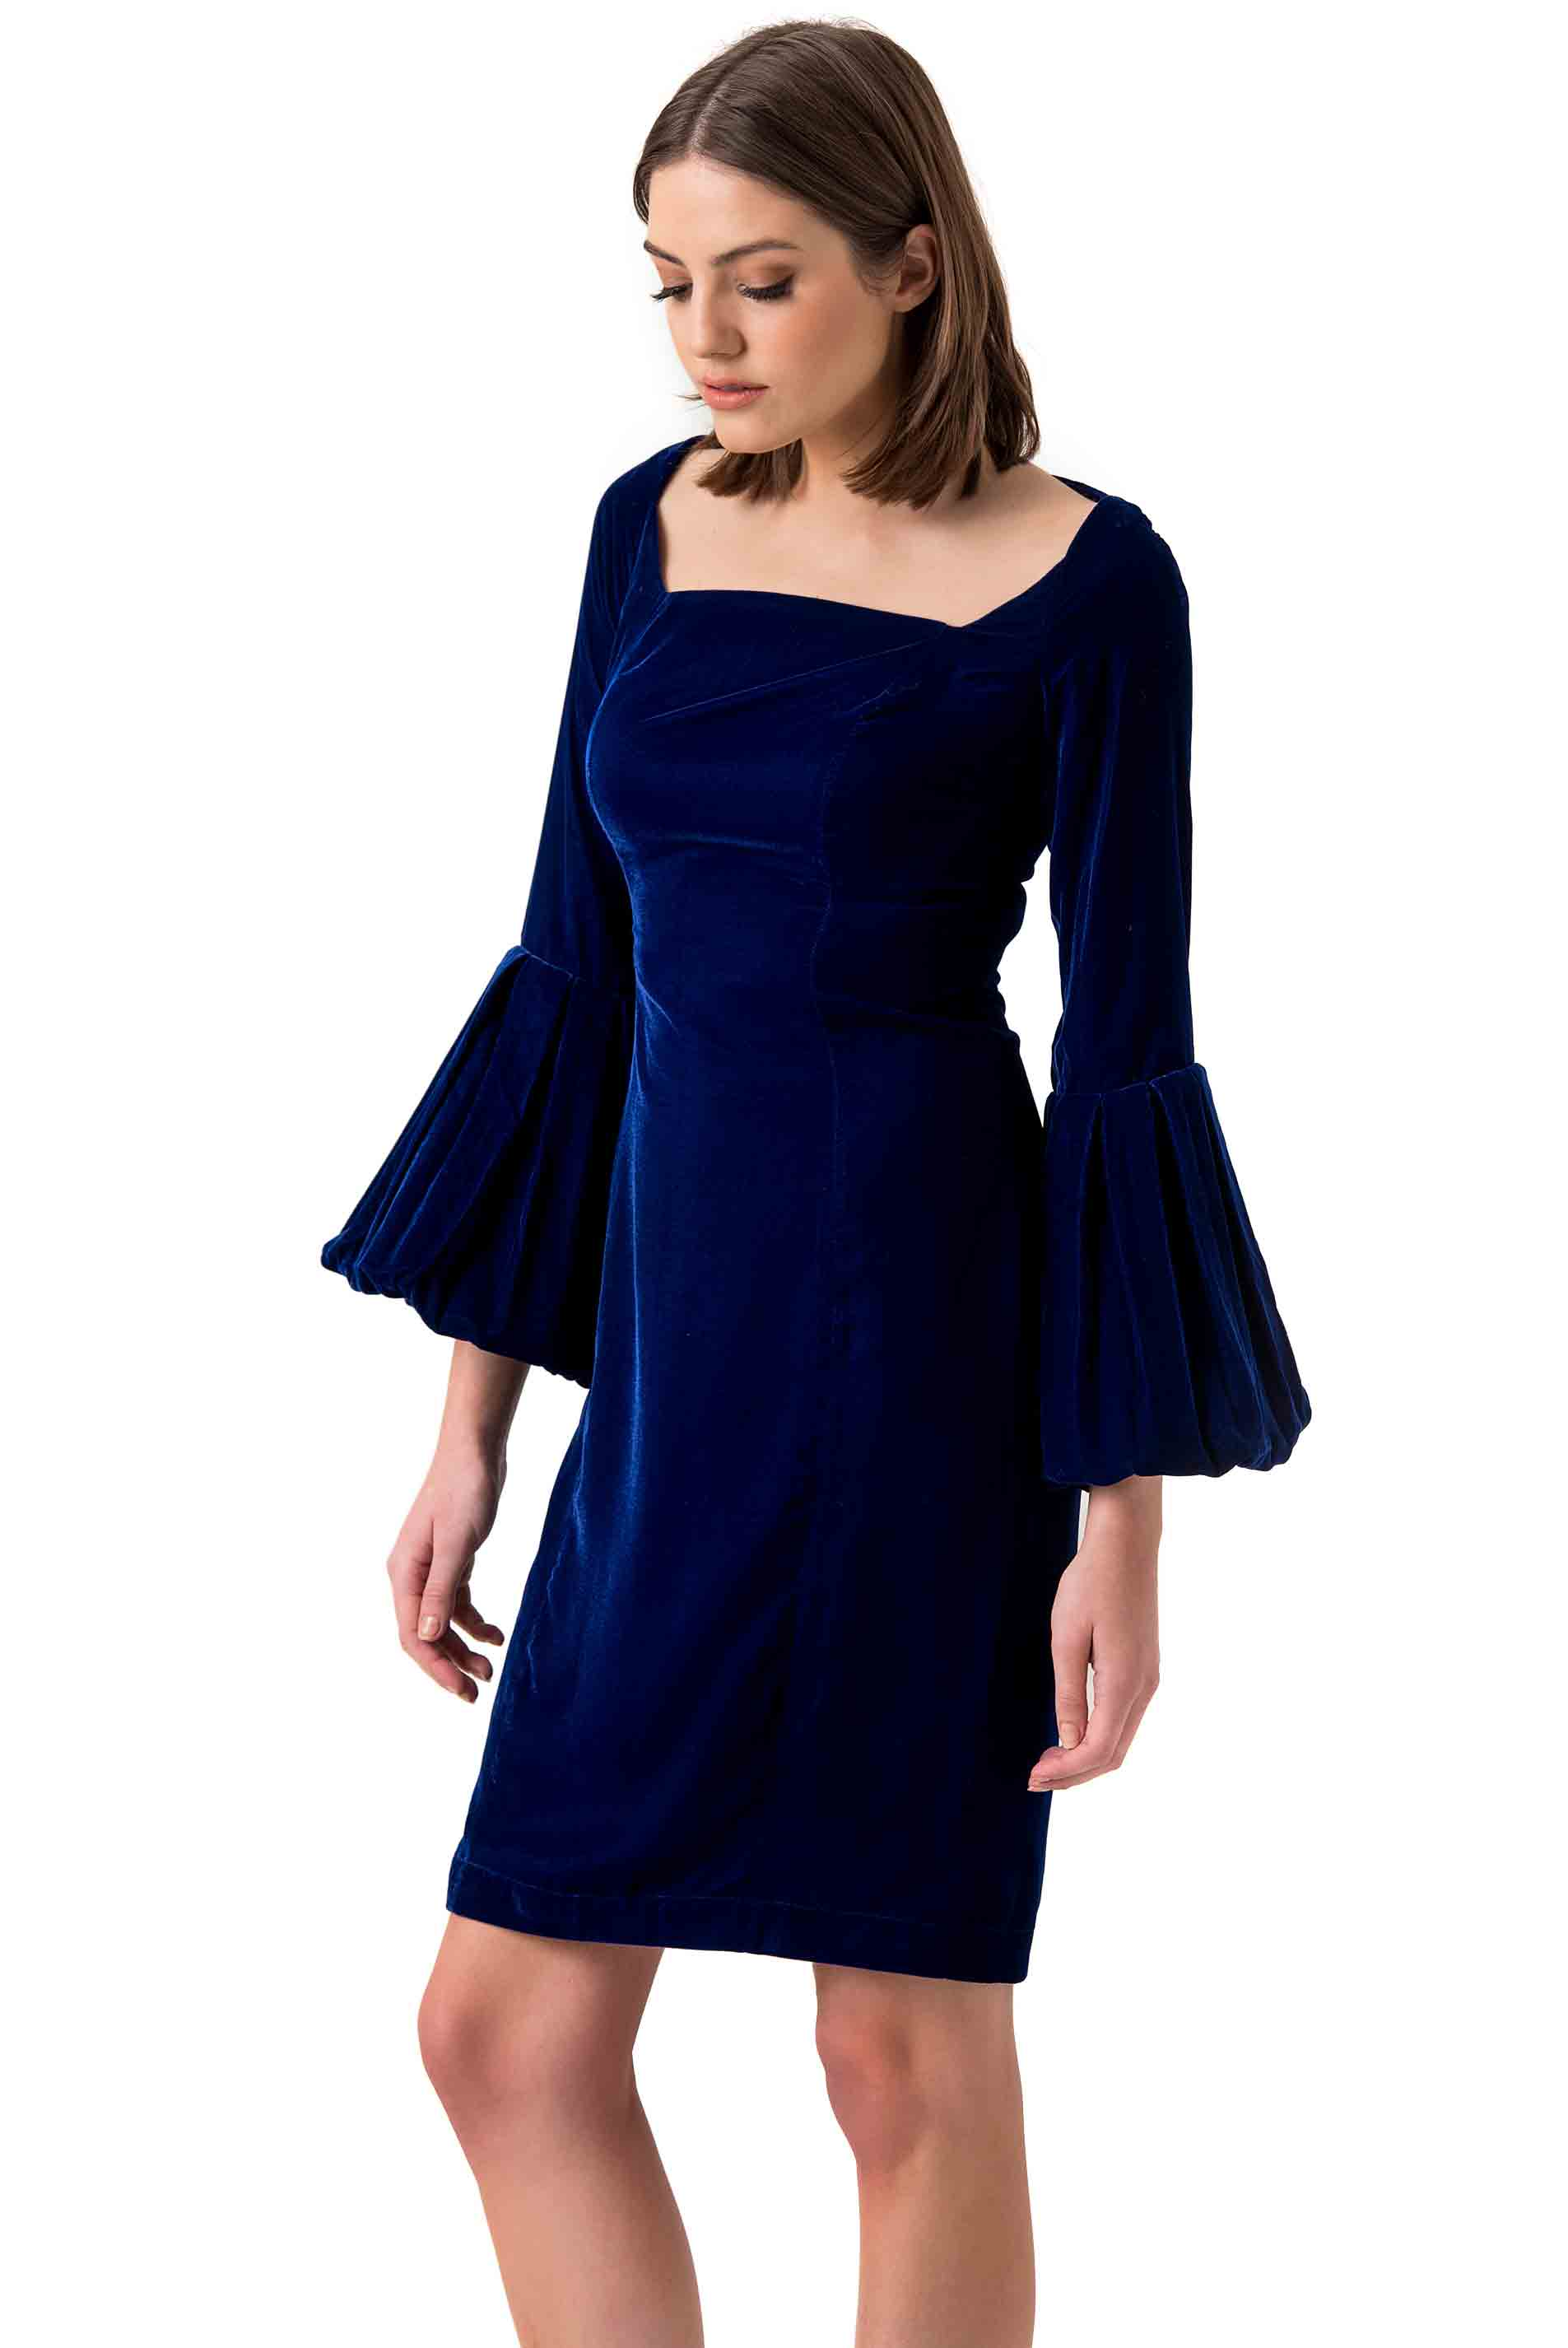 Morv London Blue Velvet Mini Dress